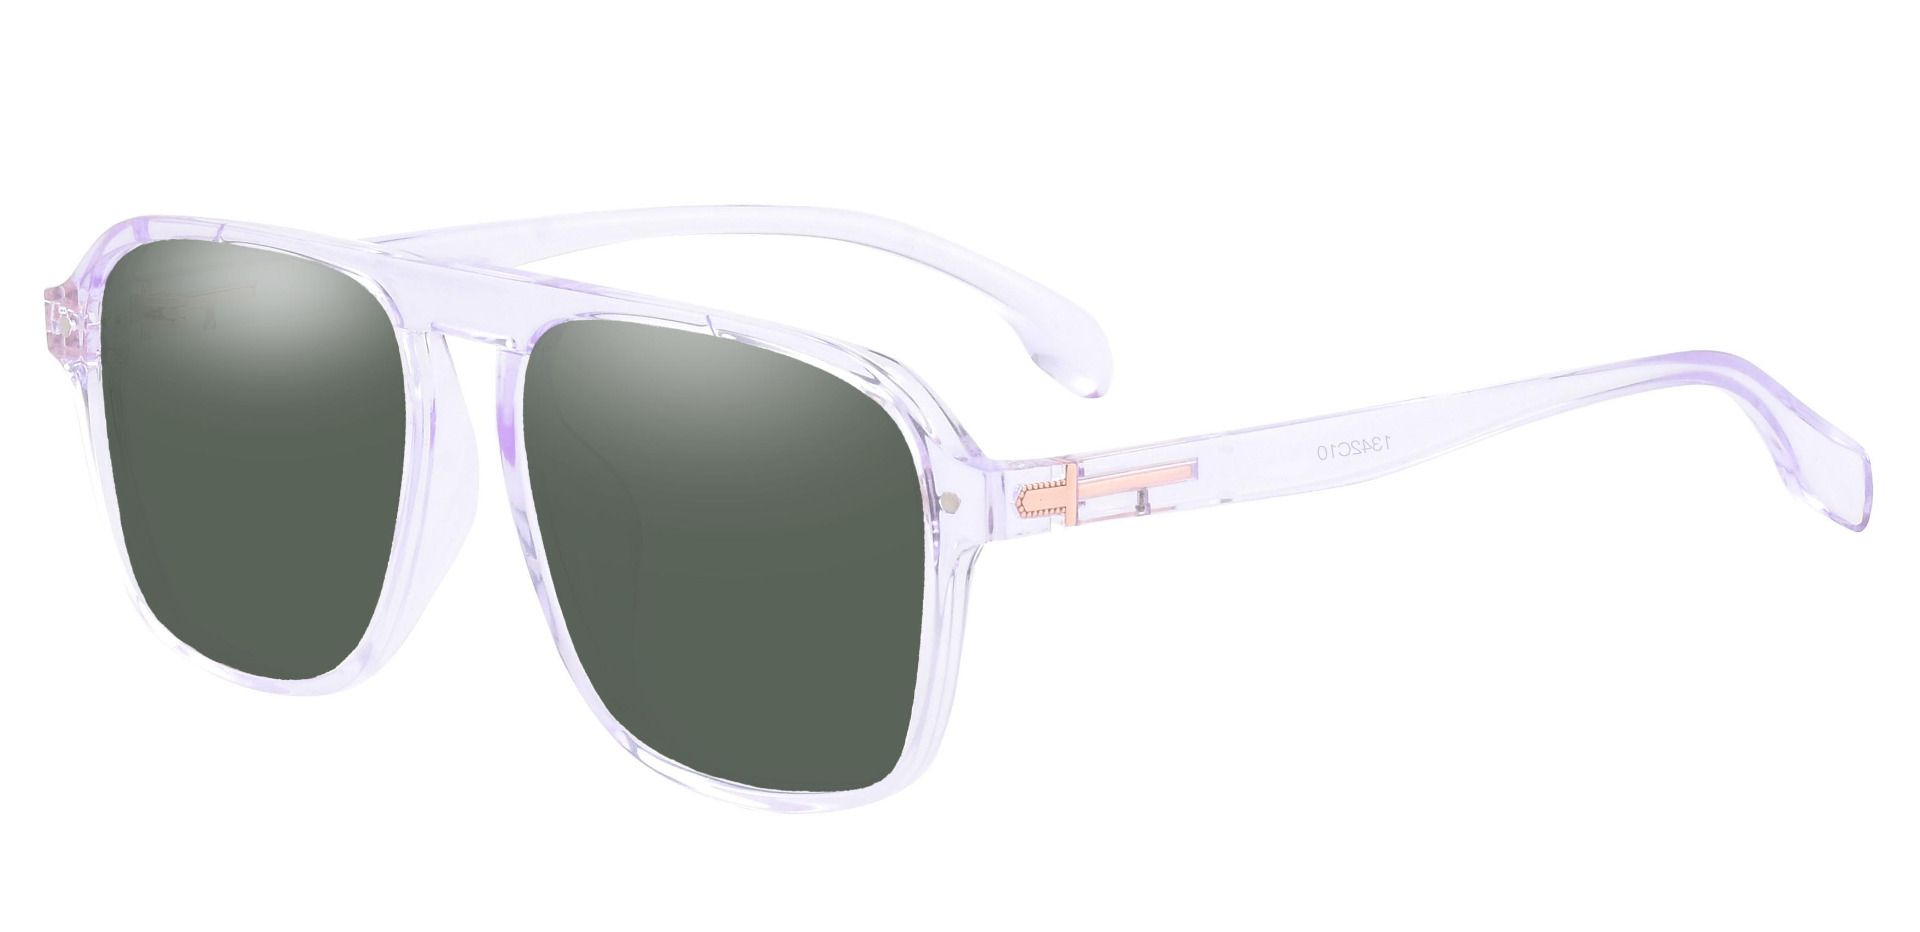 Gideon Aviator Non-Rx Sunglasses - Clear Frame With Green Lenses